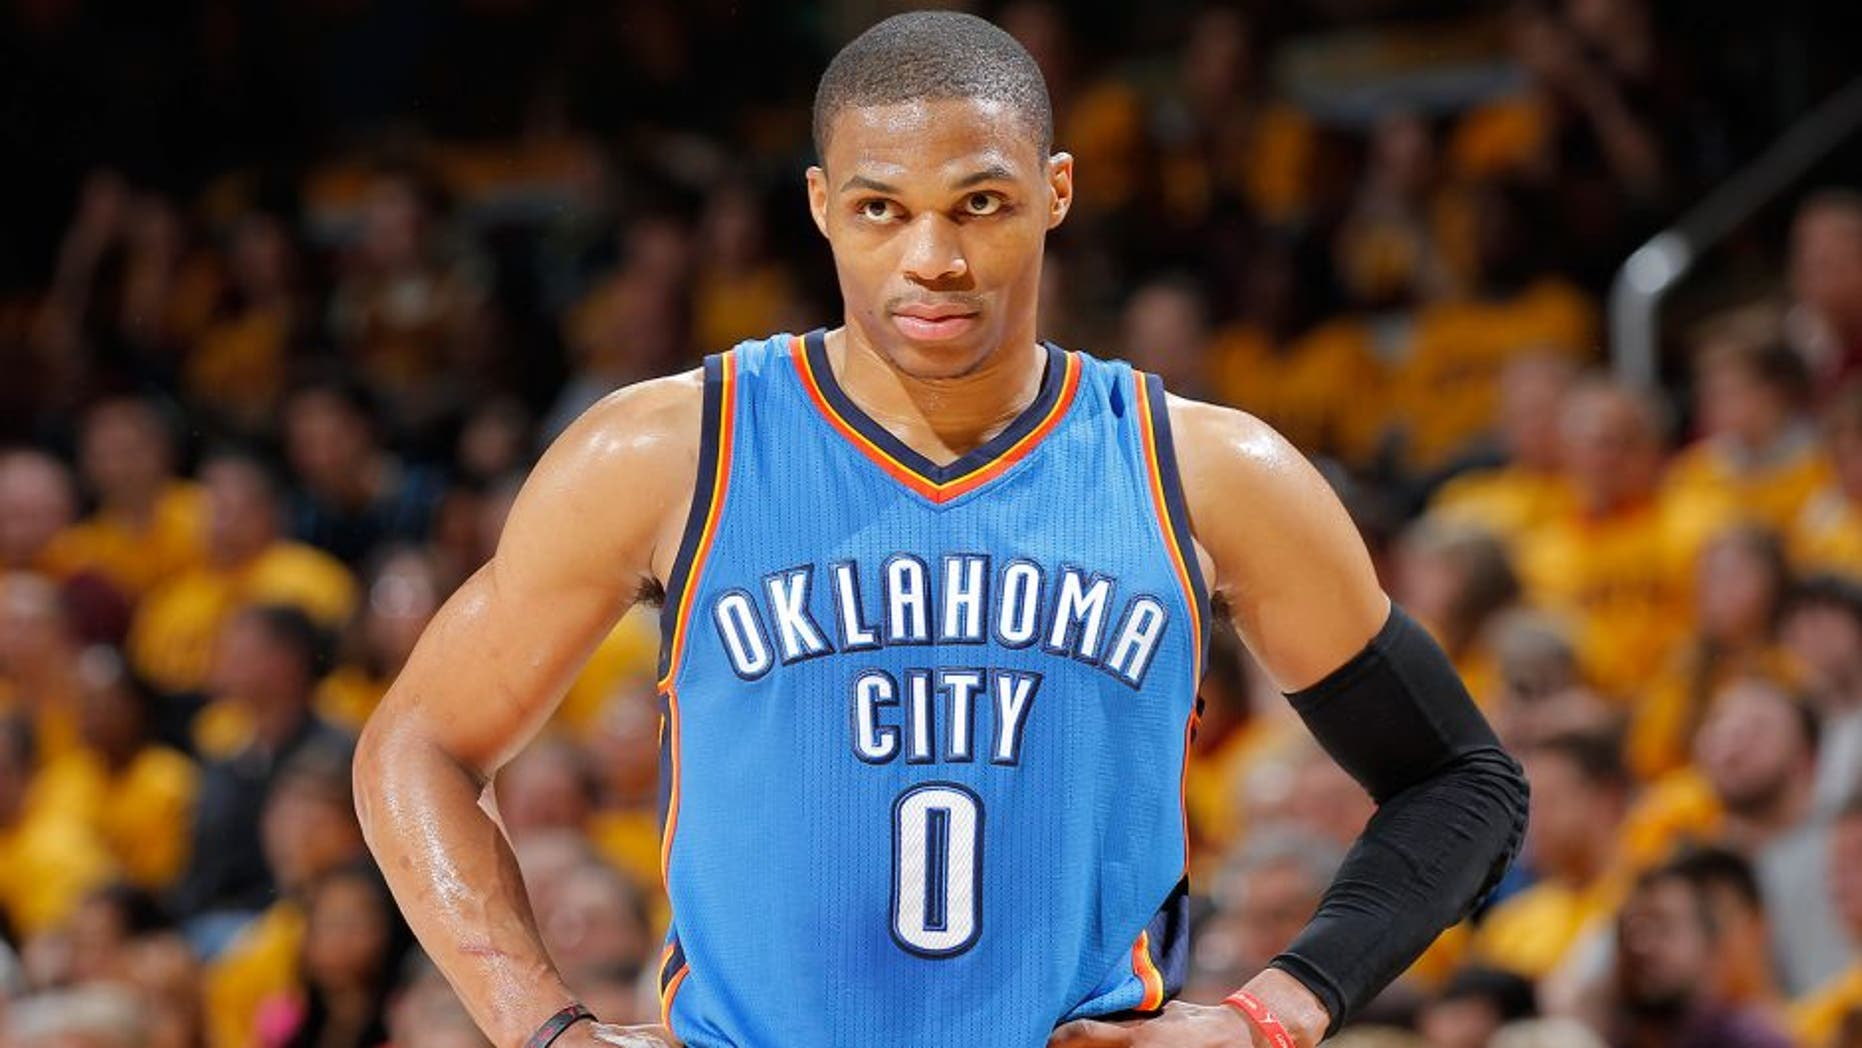 CLEVELAND, OH - JANUARY 25: Russell Westbrook #0 of the Oklahoma City Thunder looks on during the game against the Cleveland Cavaliers on January 25, 2015 at Quicken Loans Arena in Cleveland, Ohio. NOTE TO USER: User expressly acknowledges and agrees that, by downloading and or using this Photograph, user is consenting to the terms and condition of the Getty Images License Agreement. (Photo by Rocky Widner/Getty Images)